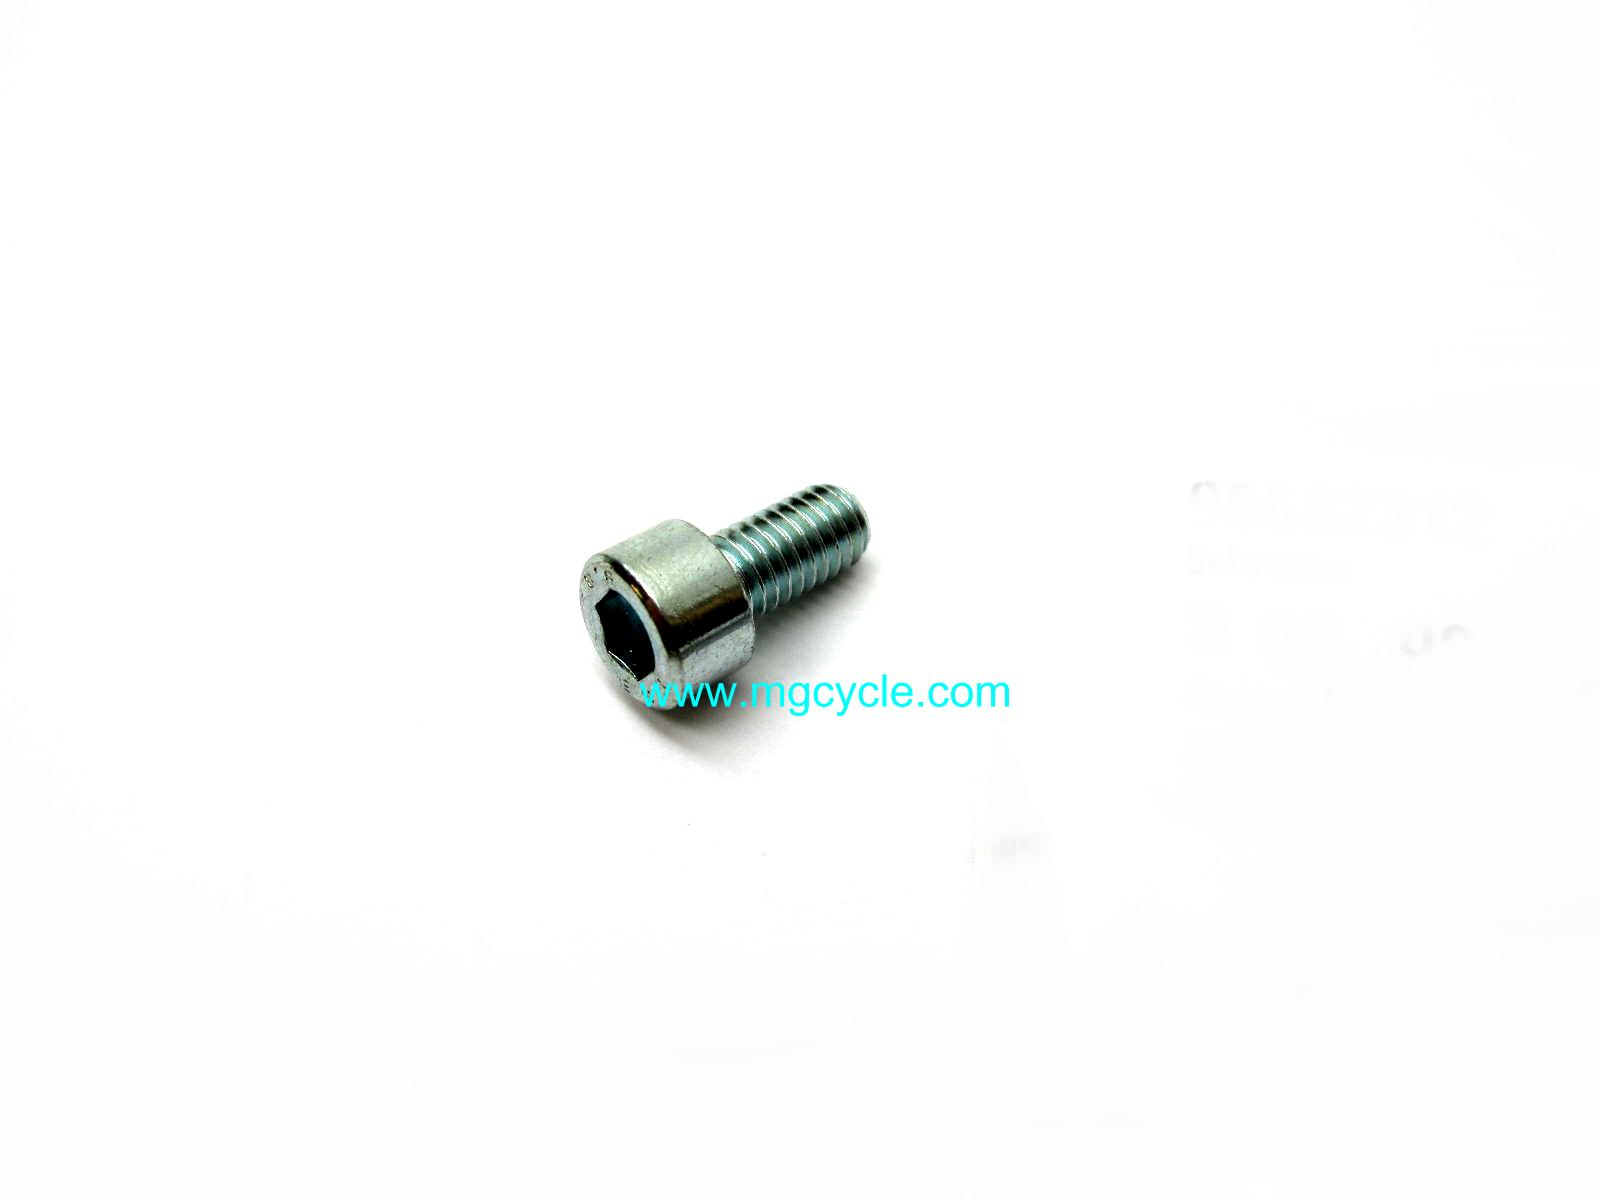 V11 Sport, screw for bar end weight